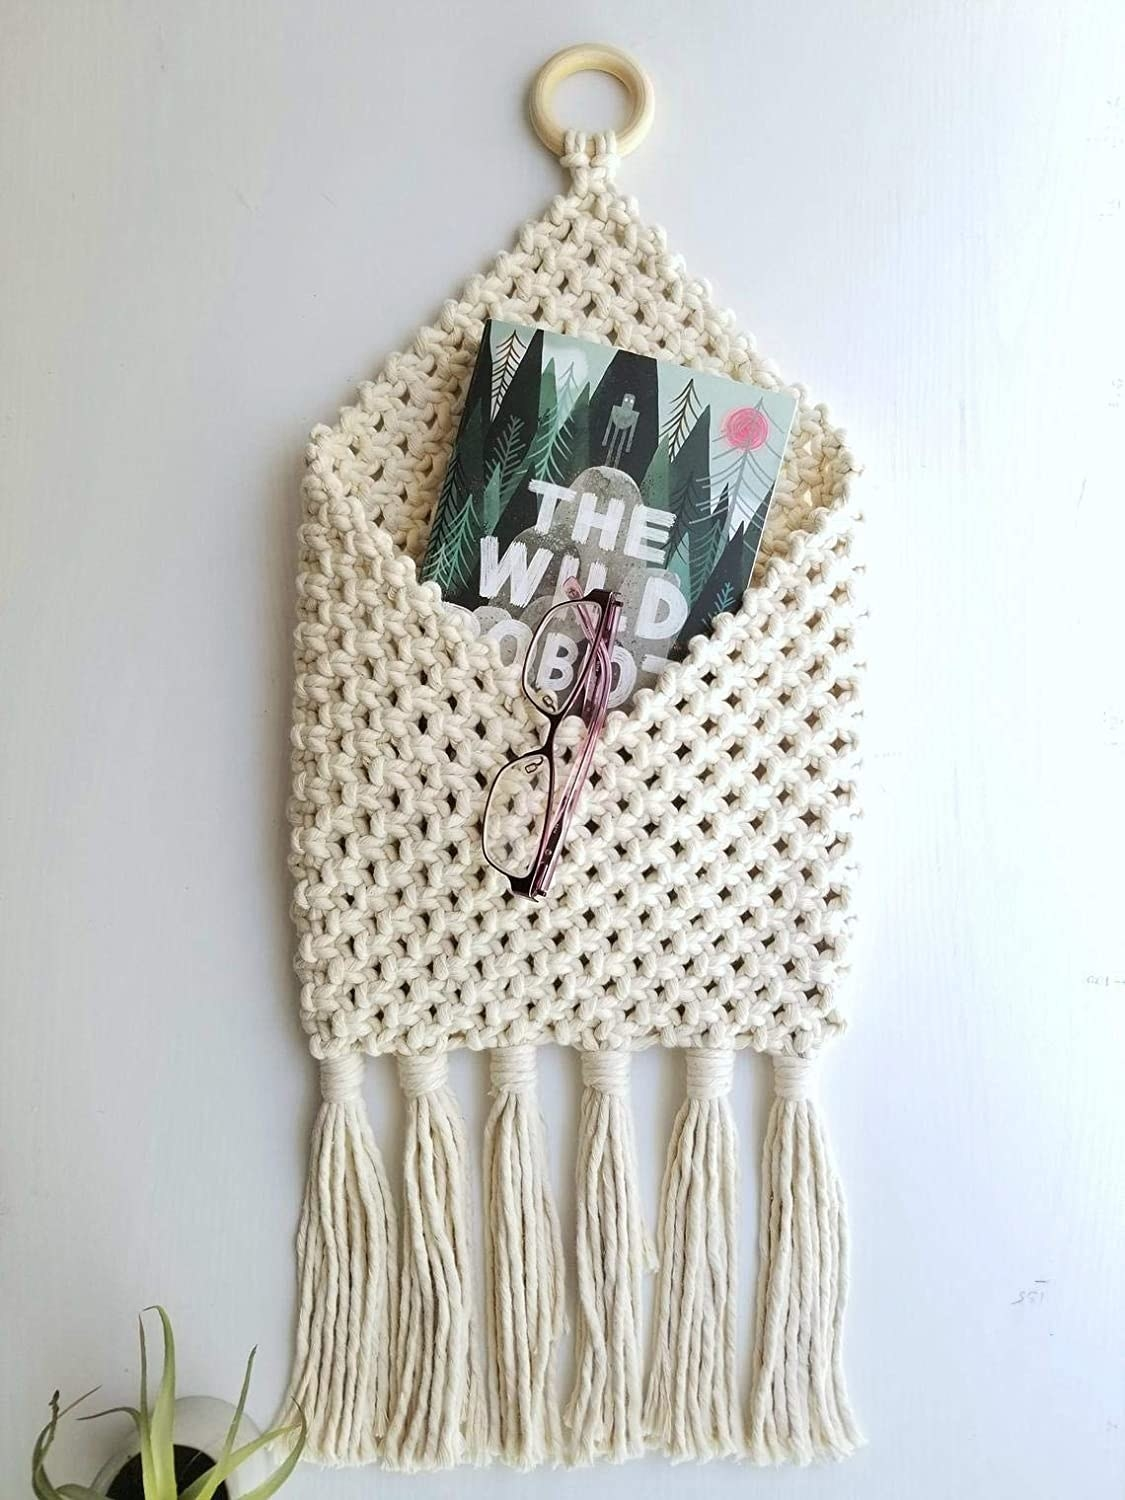 A macrame pouch hung on a wall with a pair of glasses and a magazine stored in it.